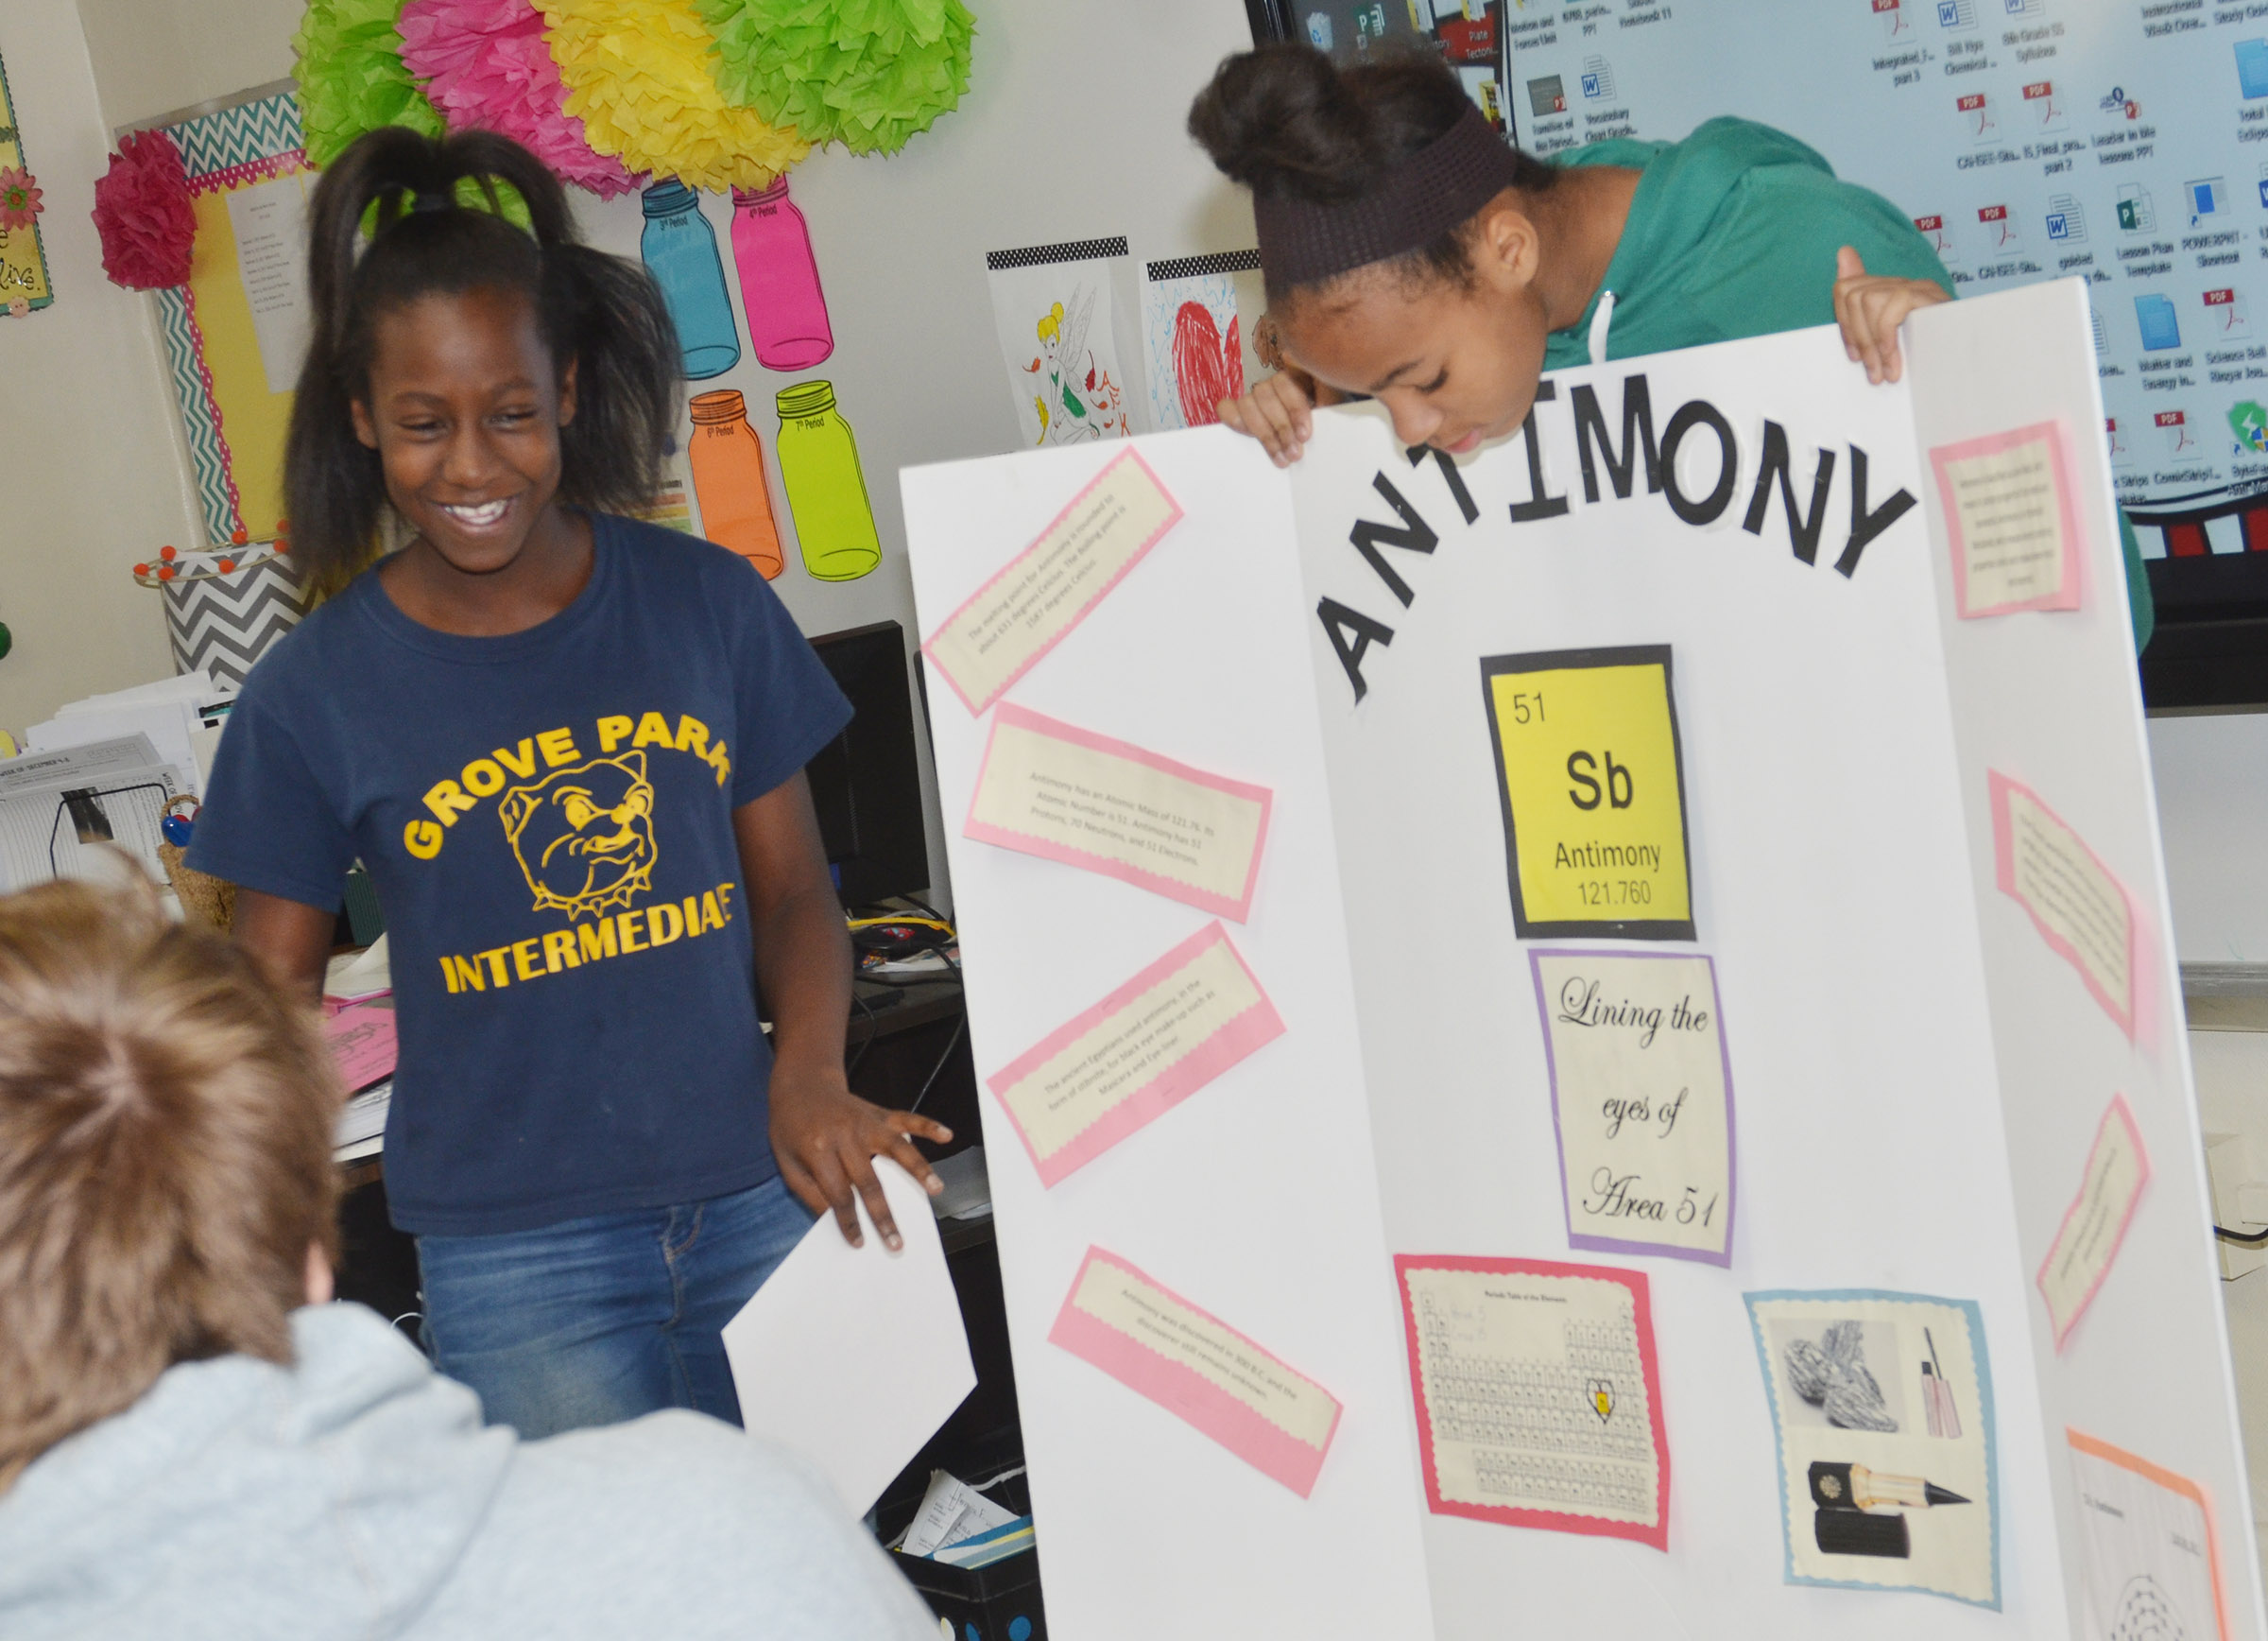 CMS eighth-grader Myricle Gholston, at left, talks about Antimony as classmate Aun Daya Coleman holds her poster.